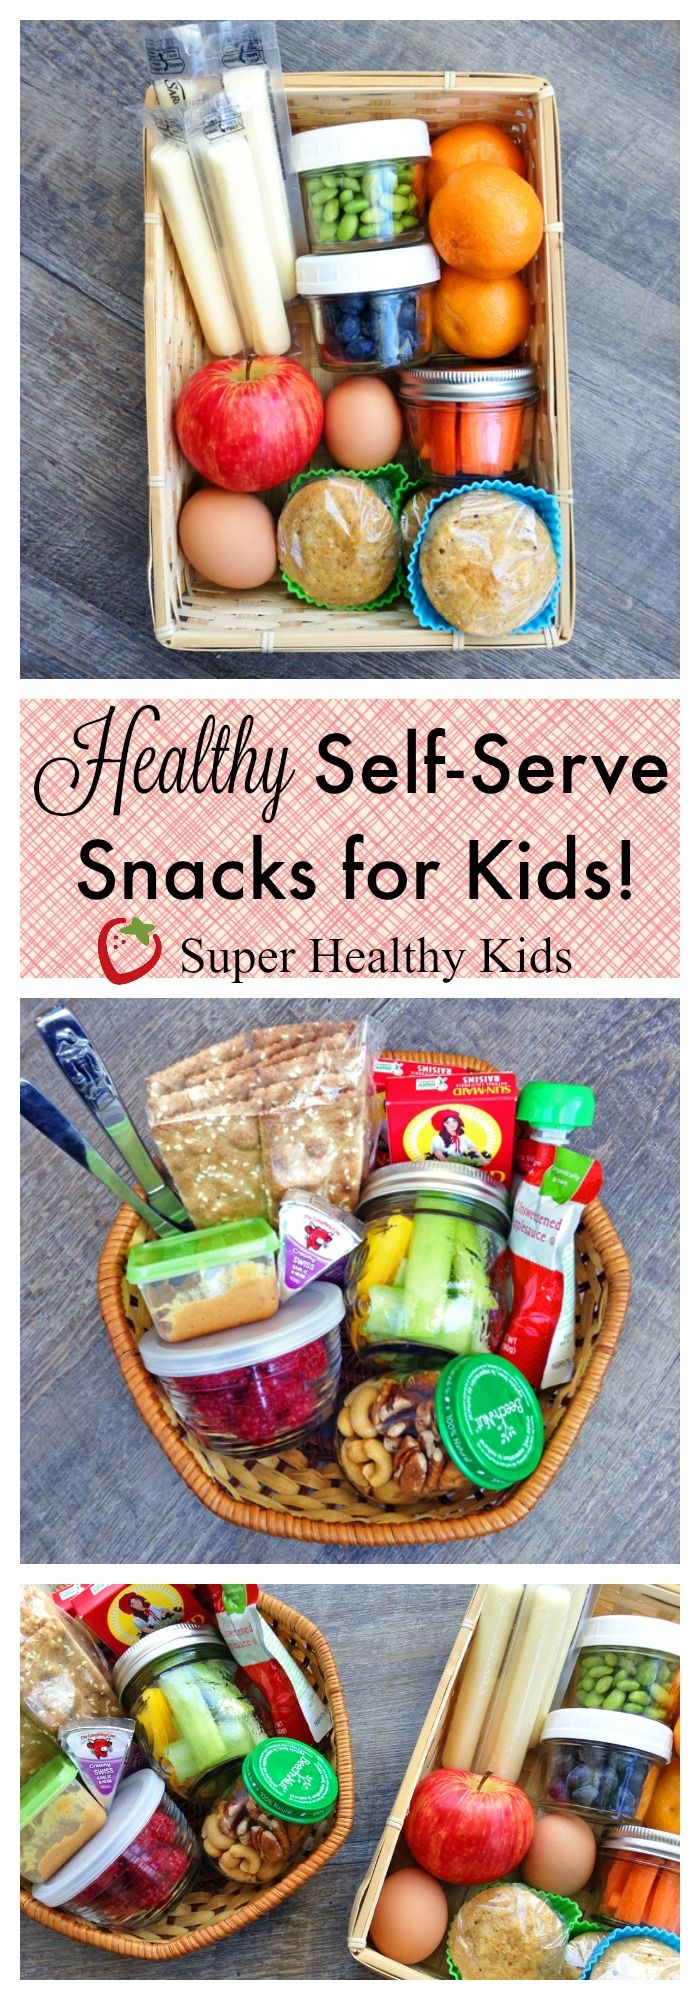 Super Healthy Kids Favorites: How to Make a Self-Serve Snack Box for Kids